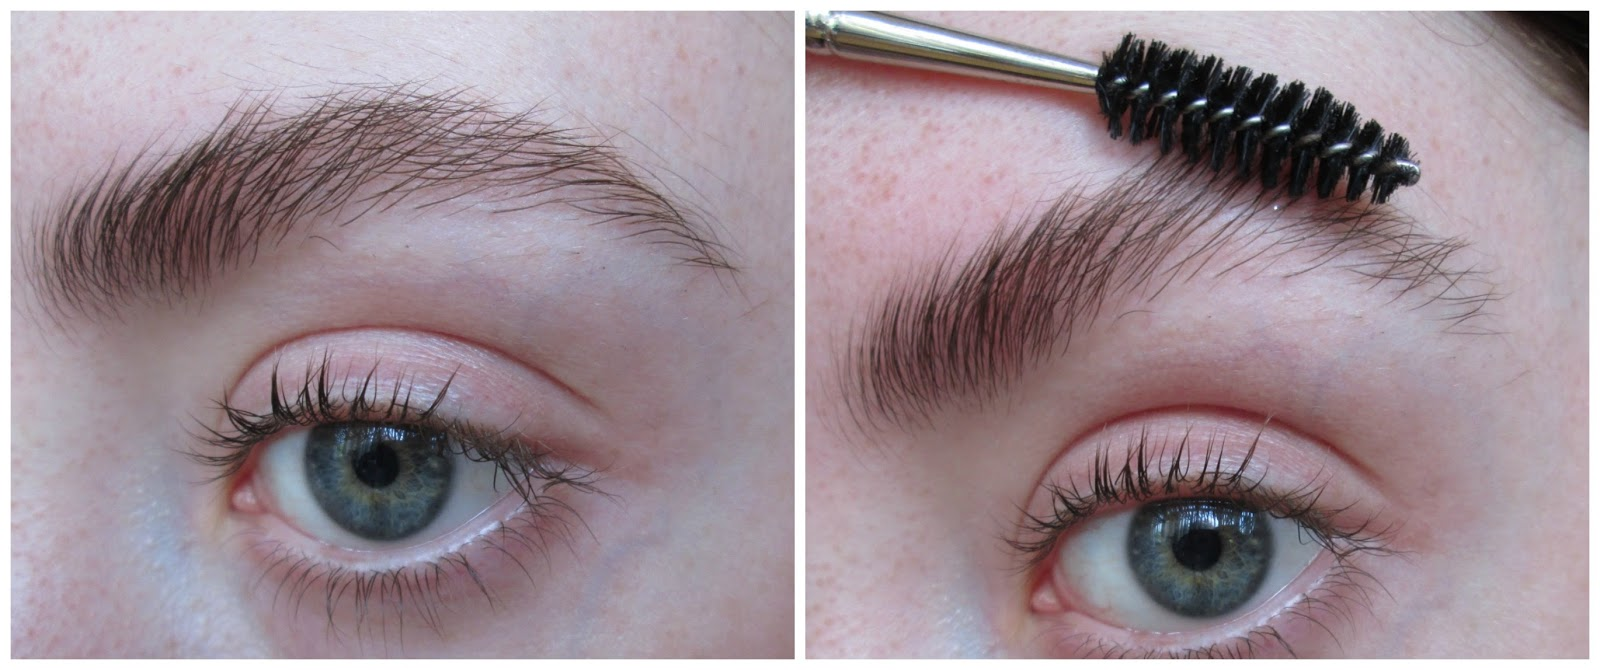 Alice Thick Bold Messy Brows How To Achieve This Current Trend